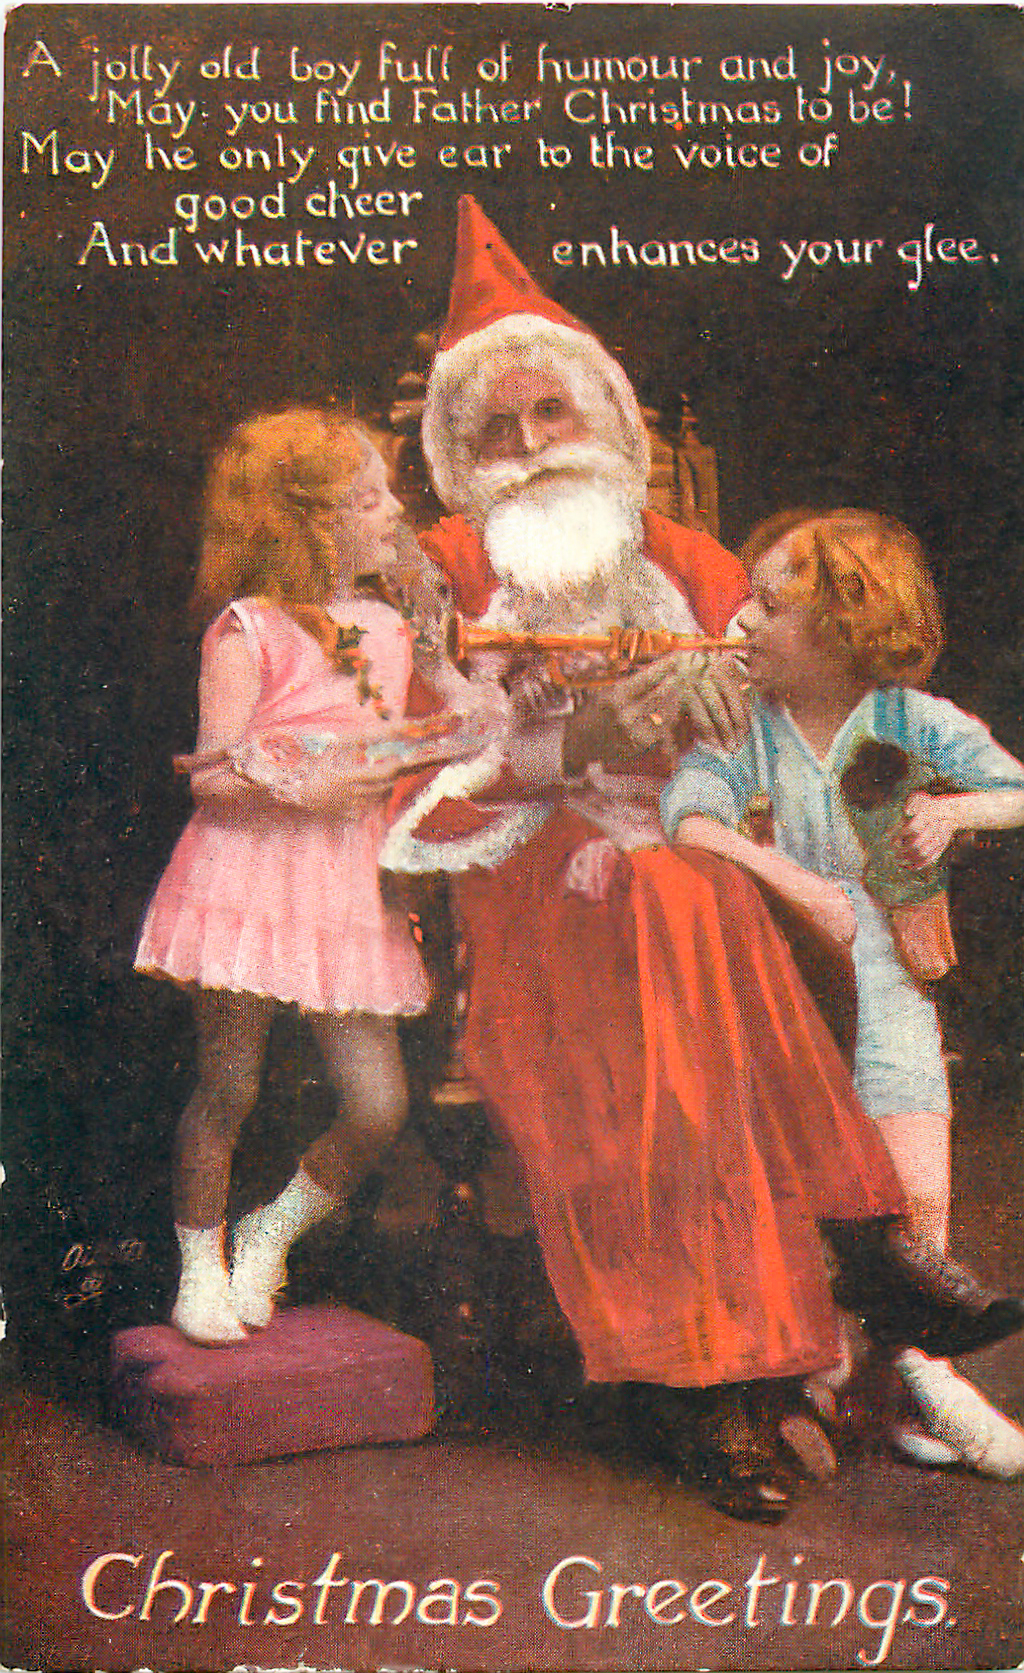 Father Christmas The Kinks.Father Christmas Wikipedia